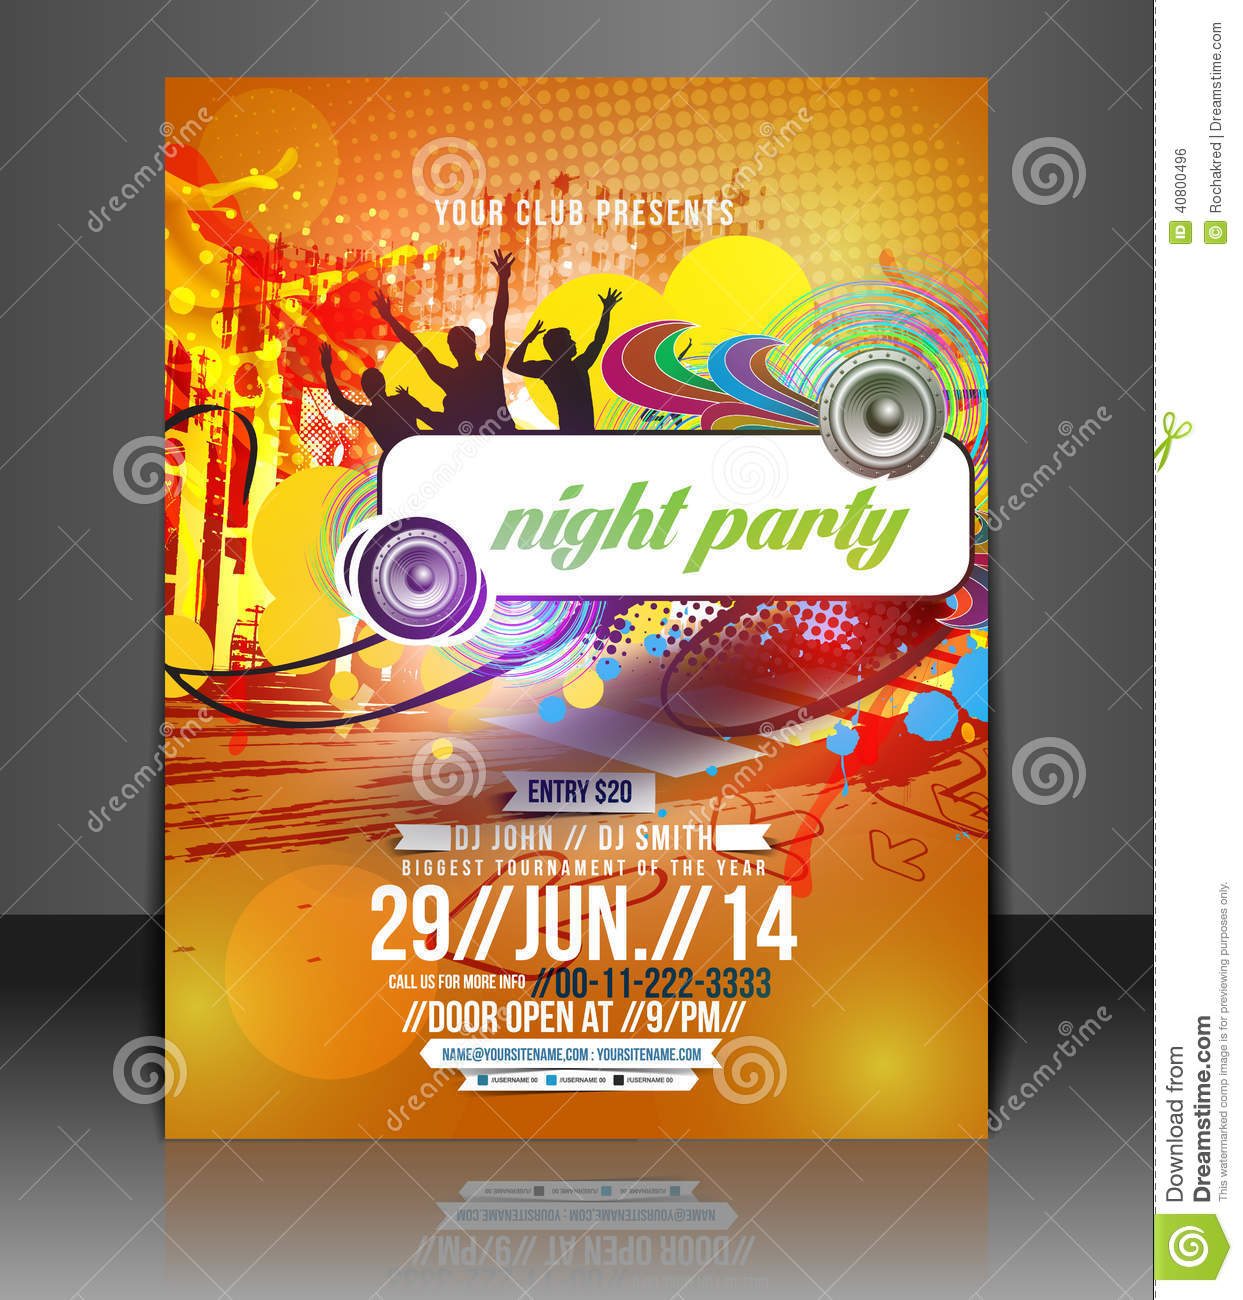 music party flyer design stock vector illustration of magazine